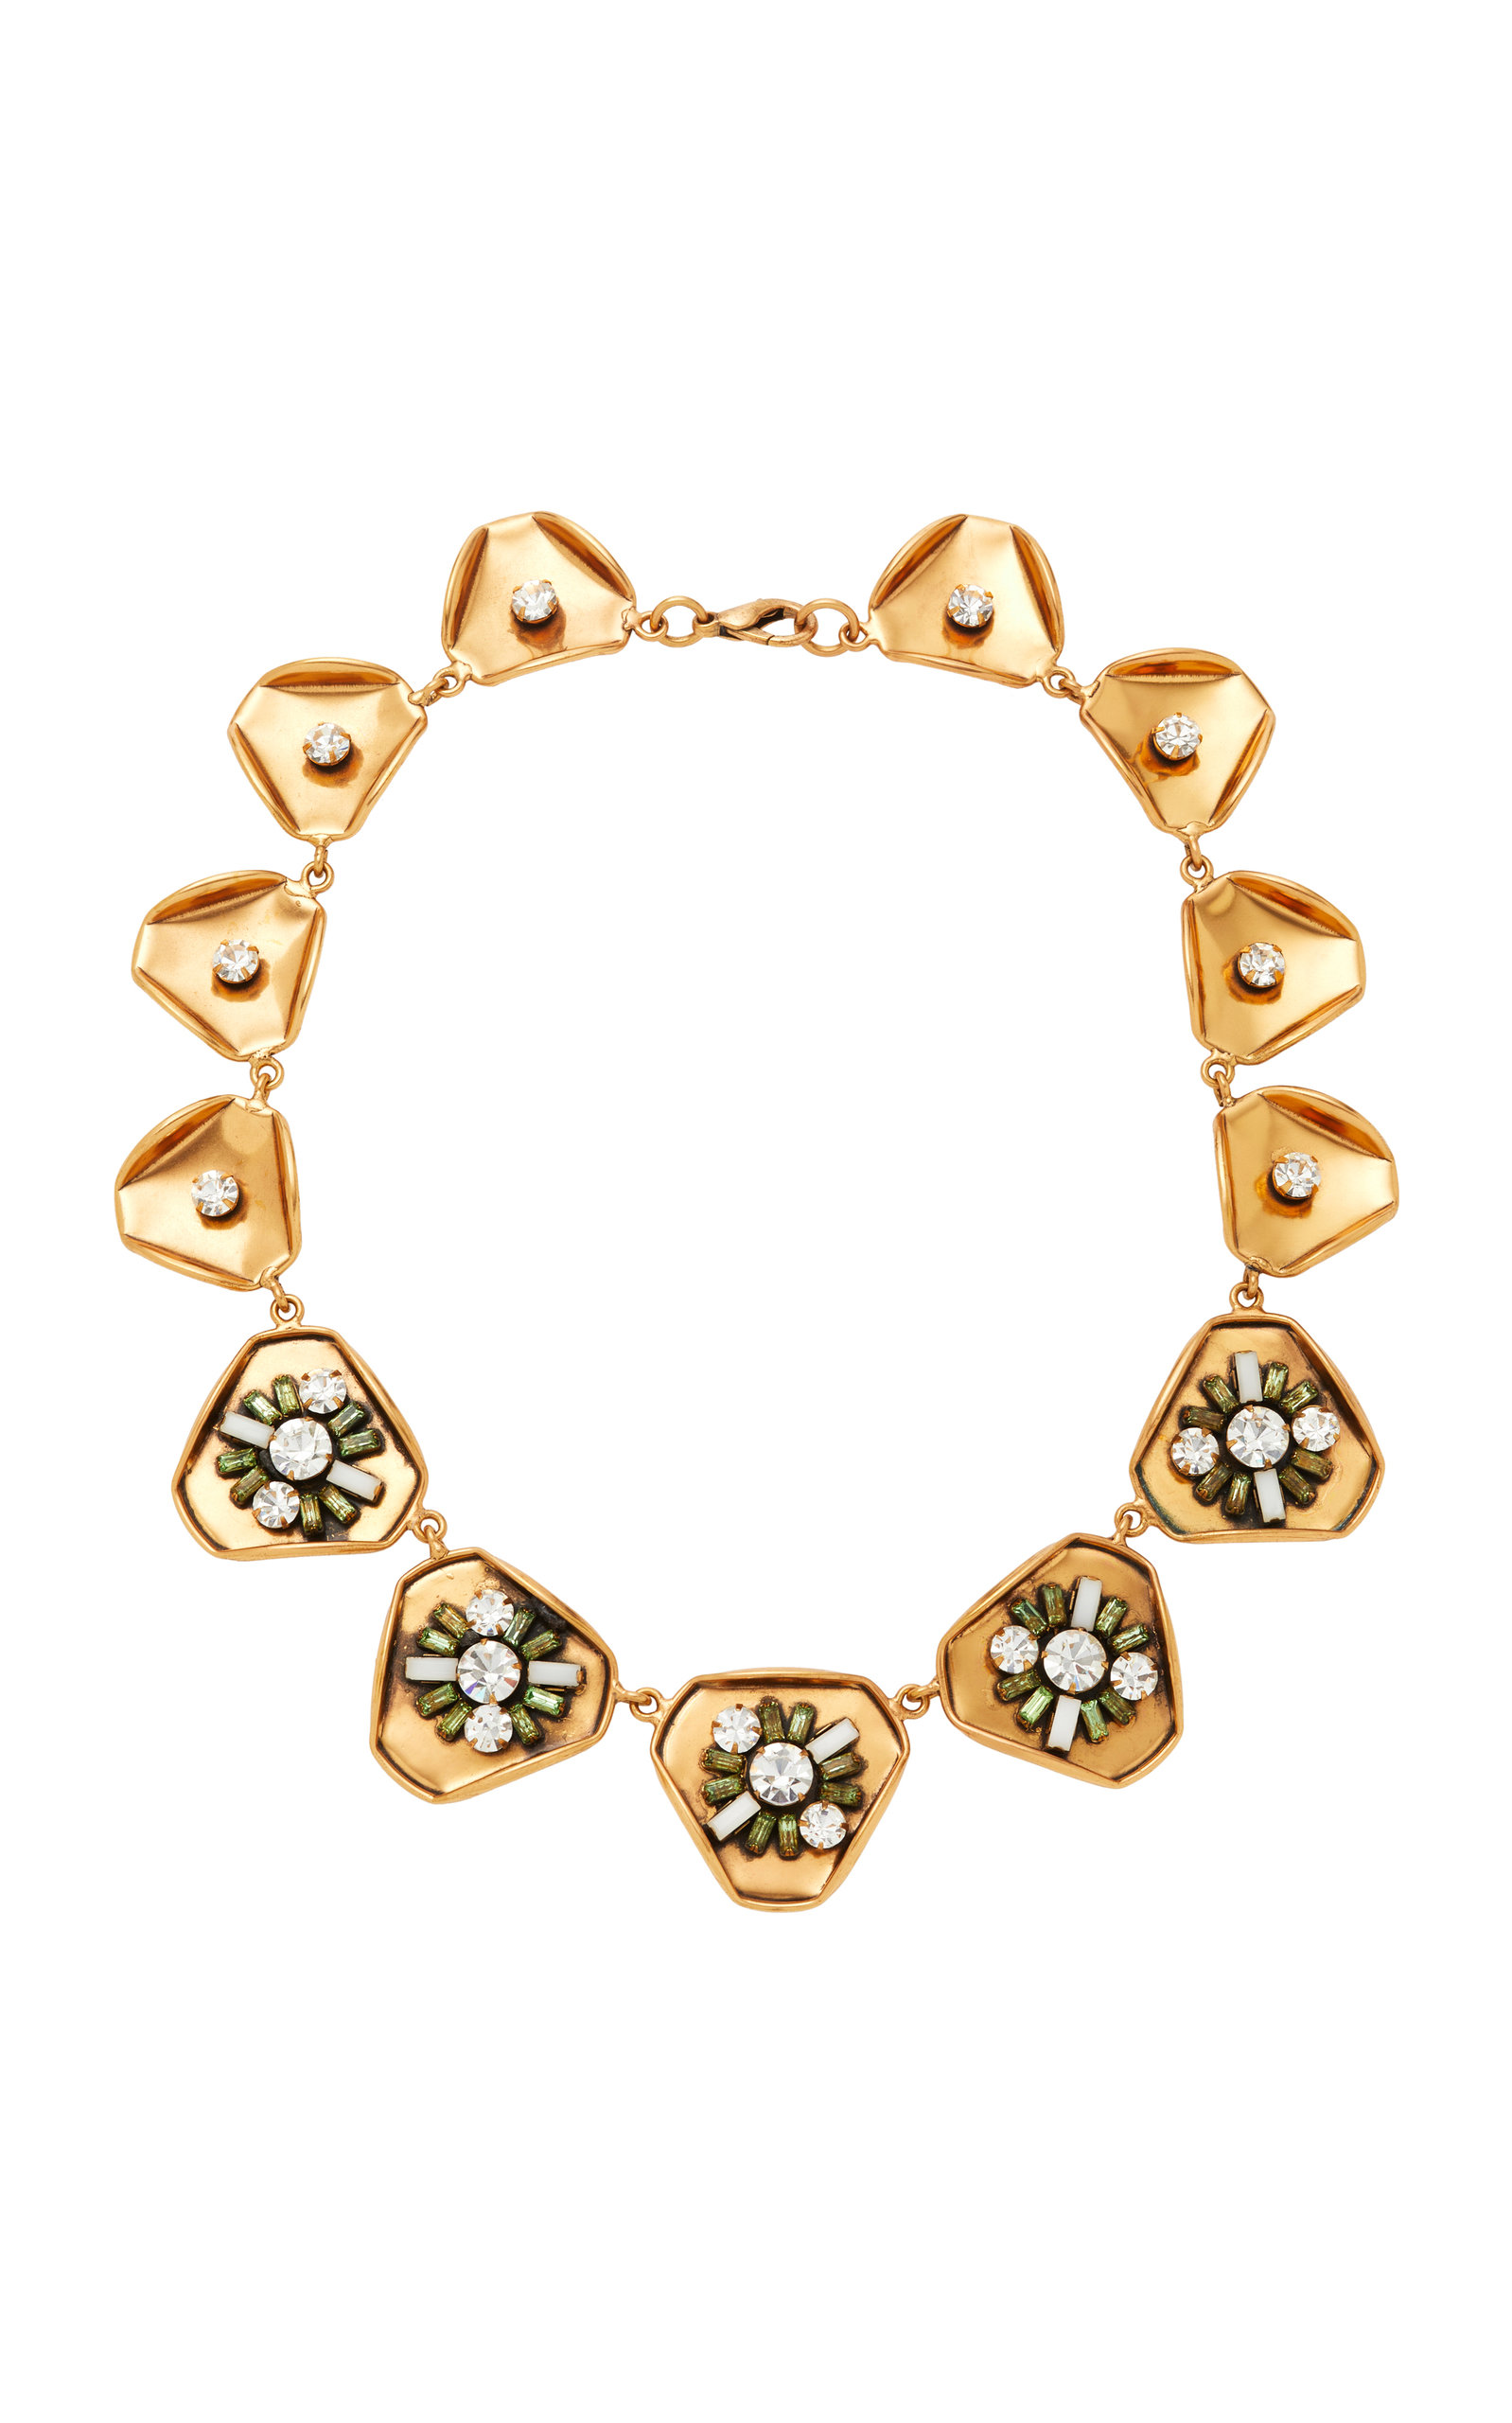 Gold-Plated Swarovski Crystal Necklace Nicole Romano YnhaaVFln